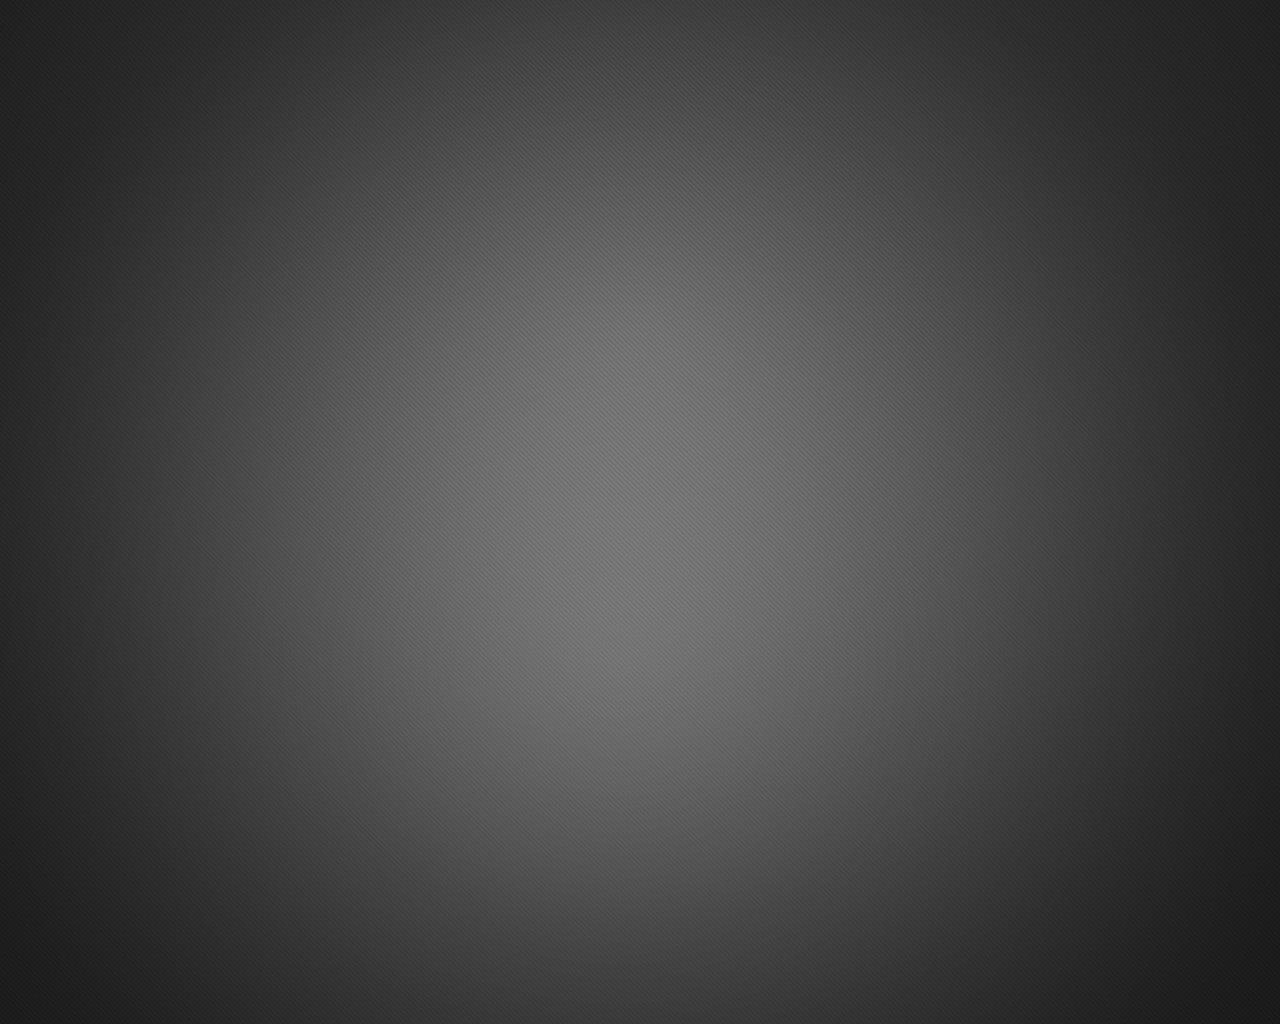 Grey And Black Wallpaper | Free Hd Wallpapers